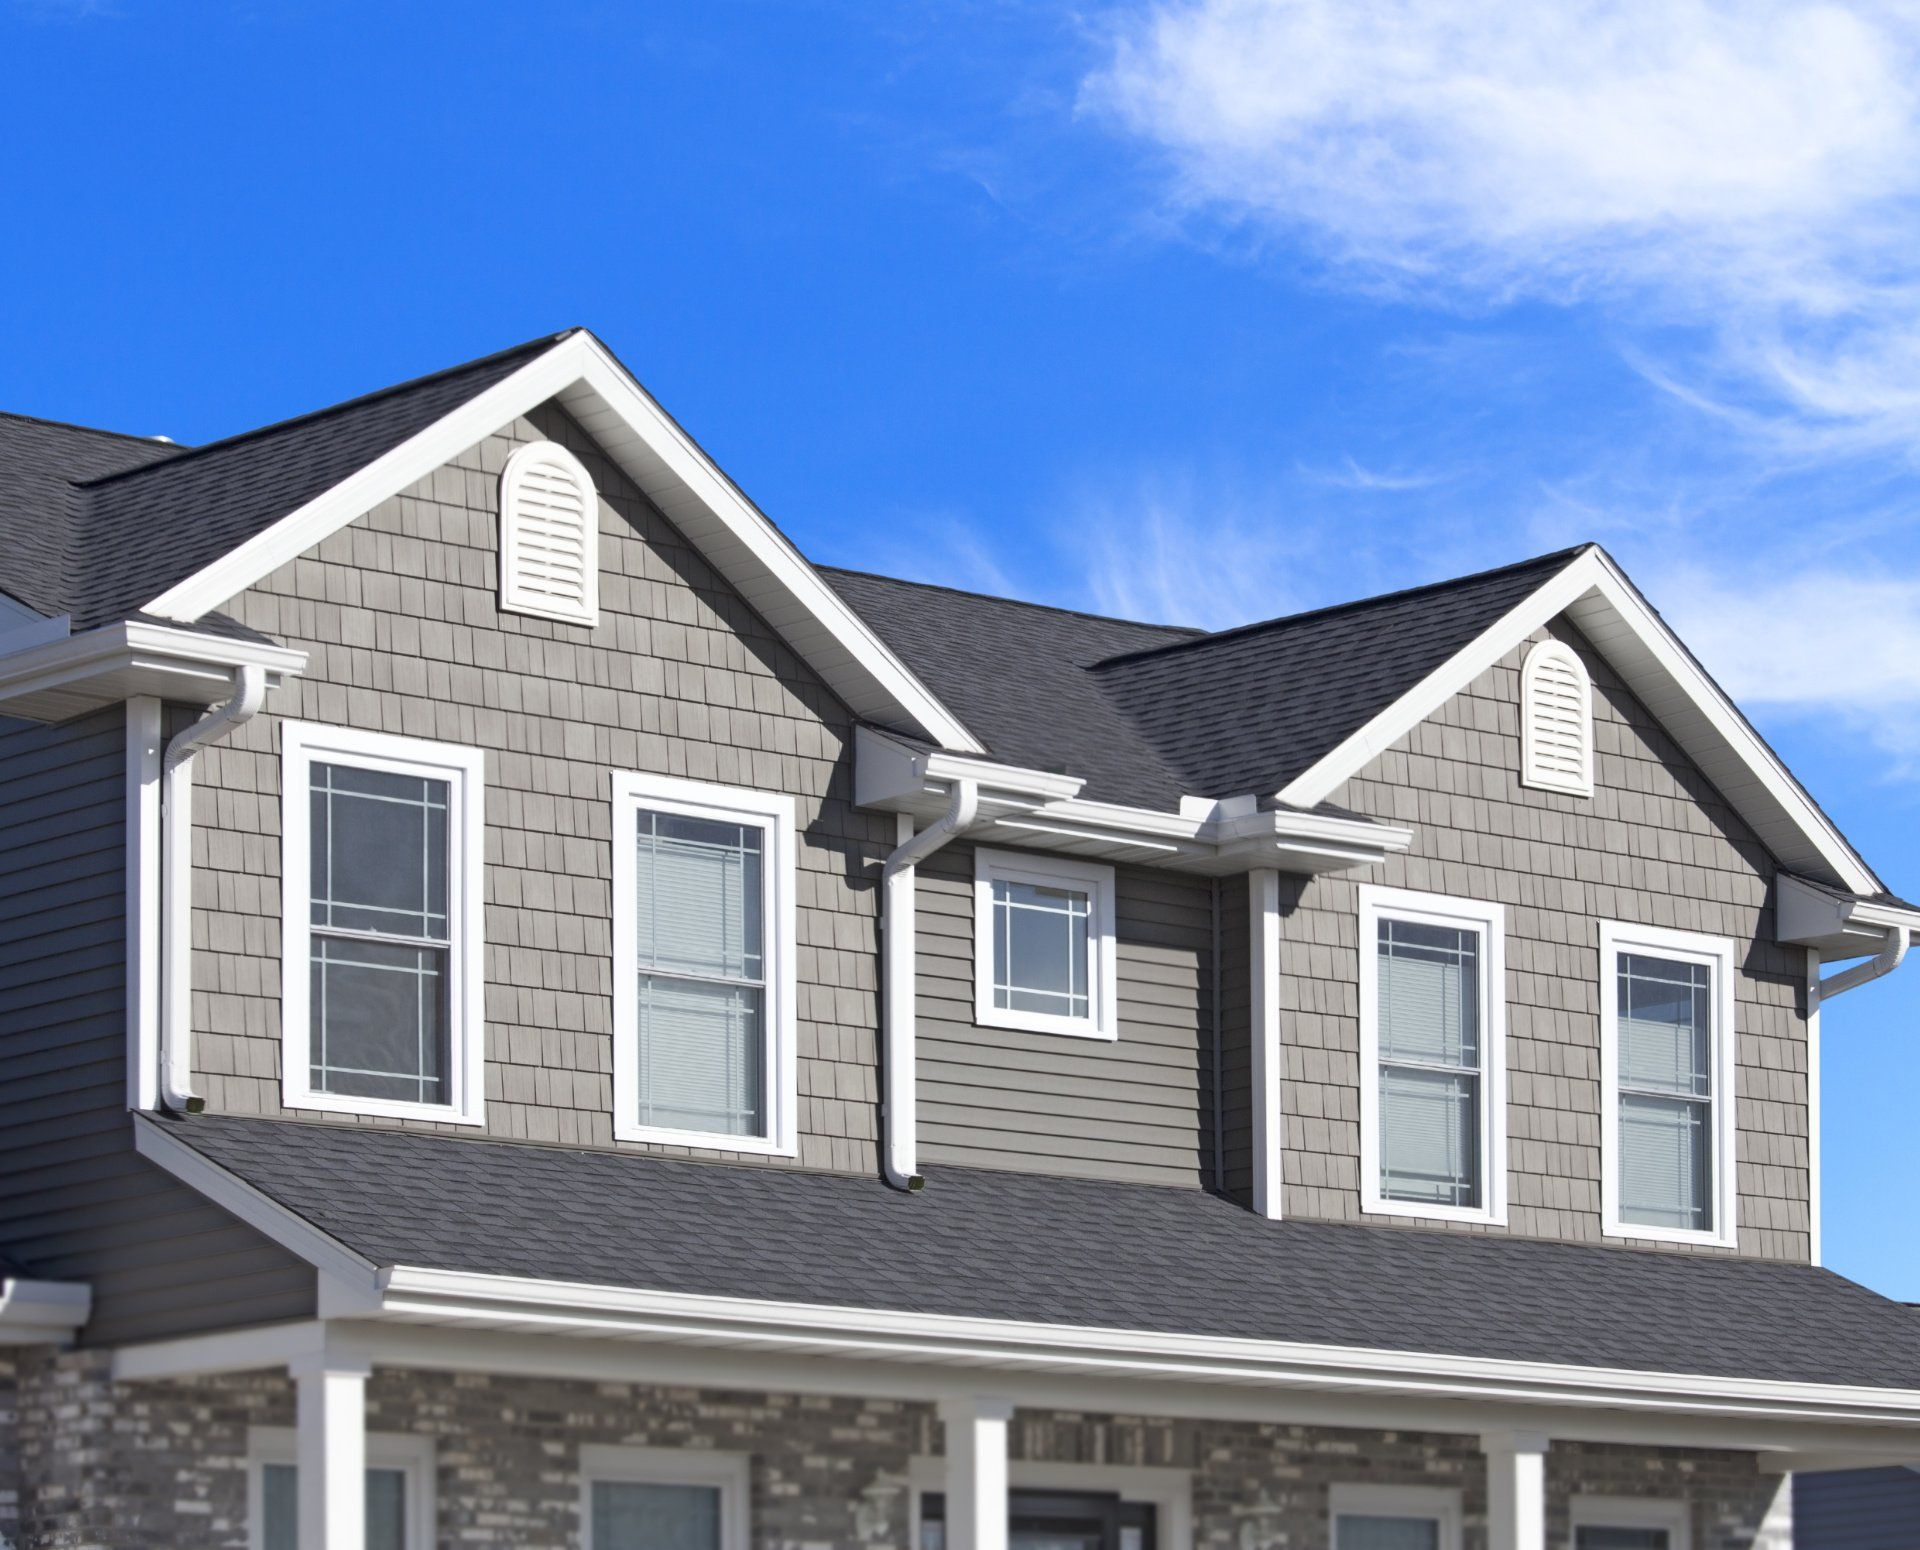 Everyone Takes Pride In Their Home Keeping The Home S External And Internal Atmosphere Beautiful Is So Roof Replacement Cost Shake Siding House Siding Options